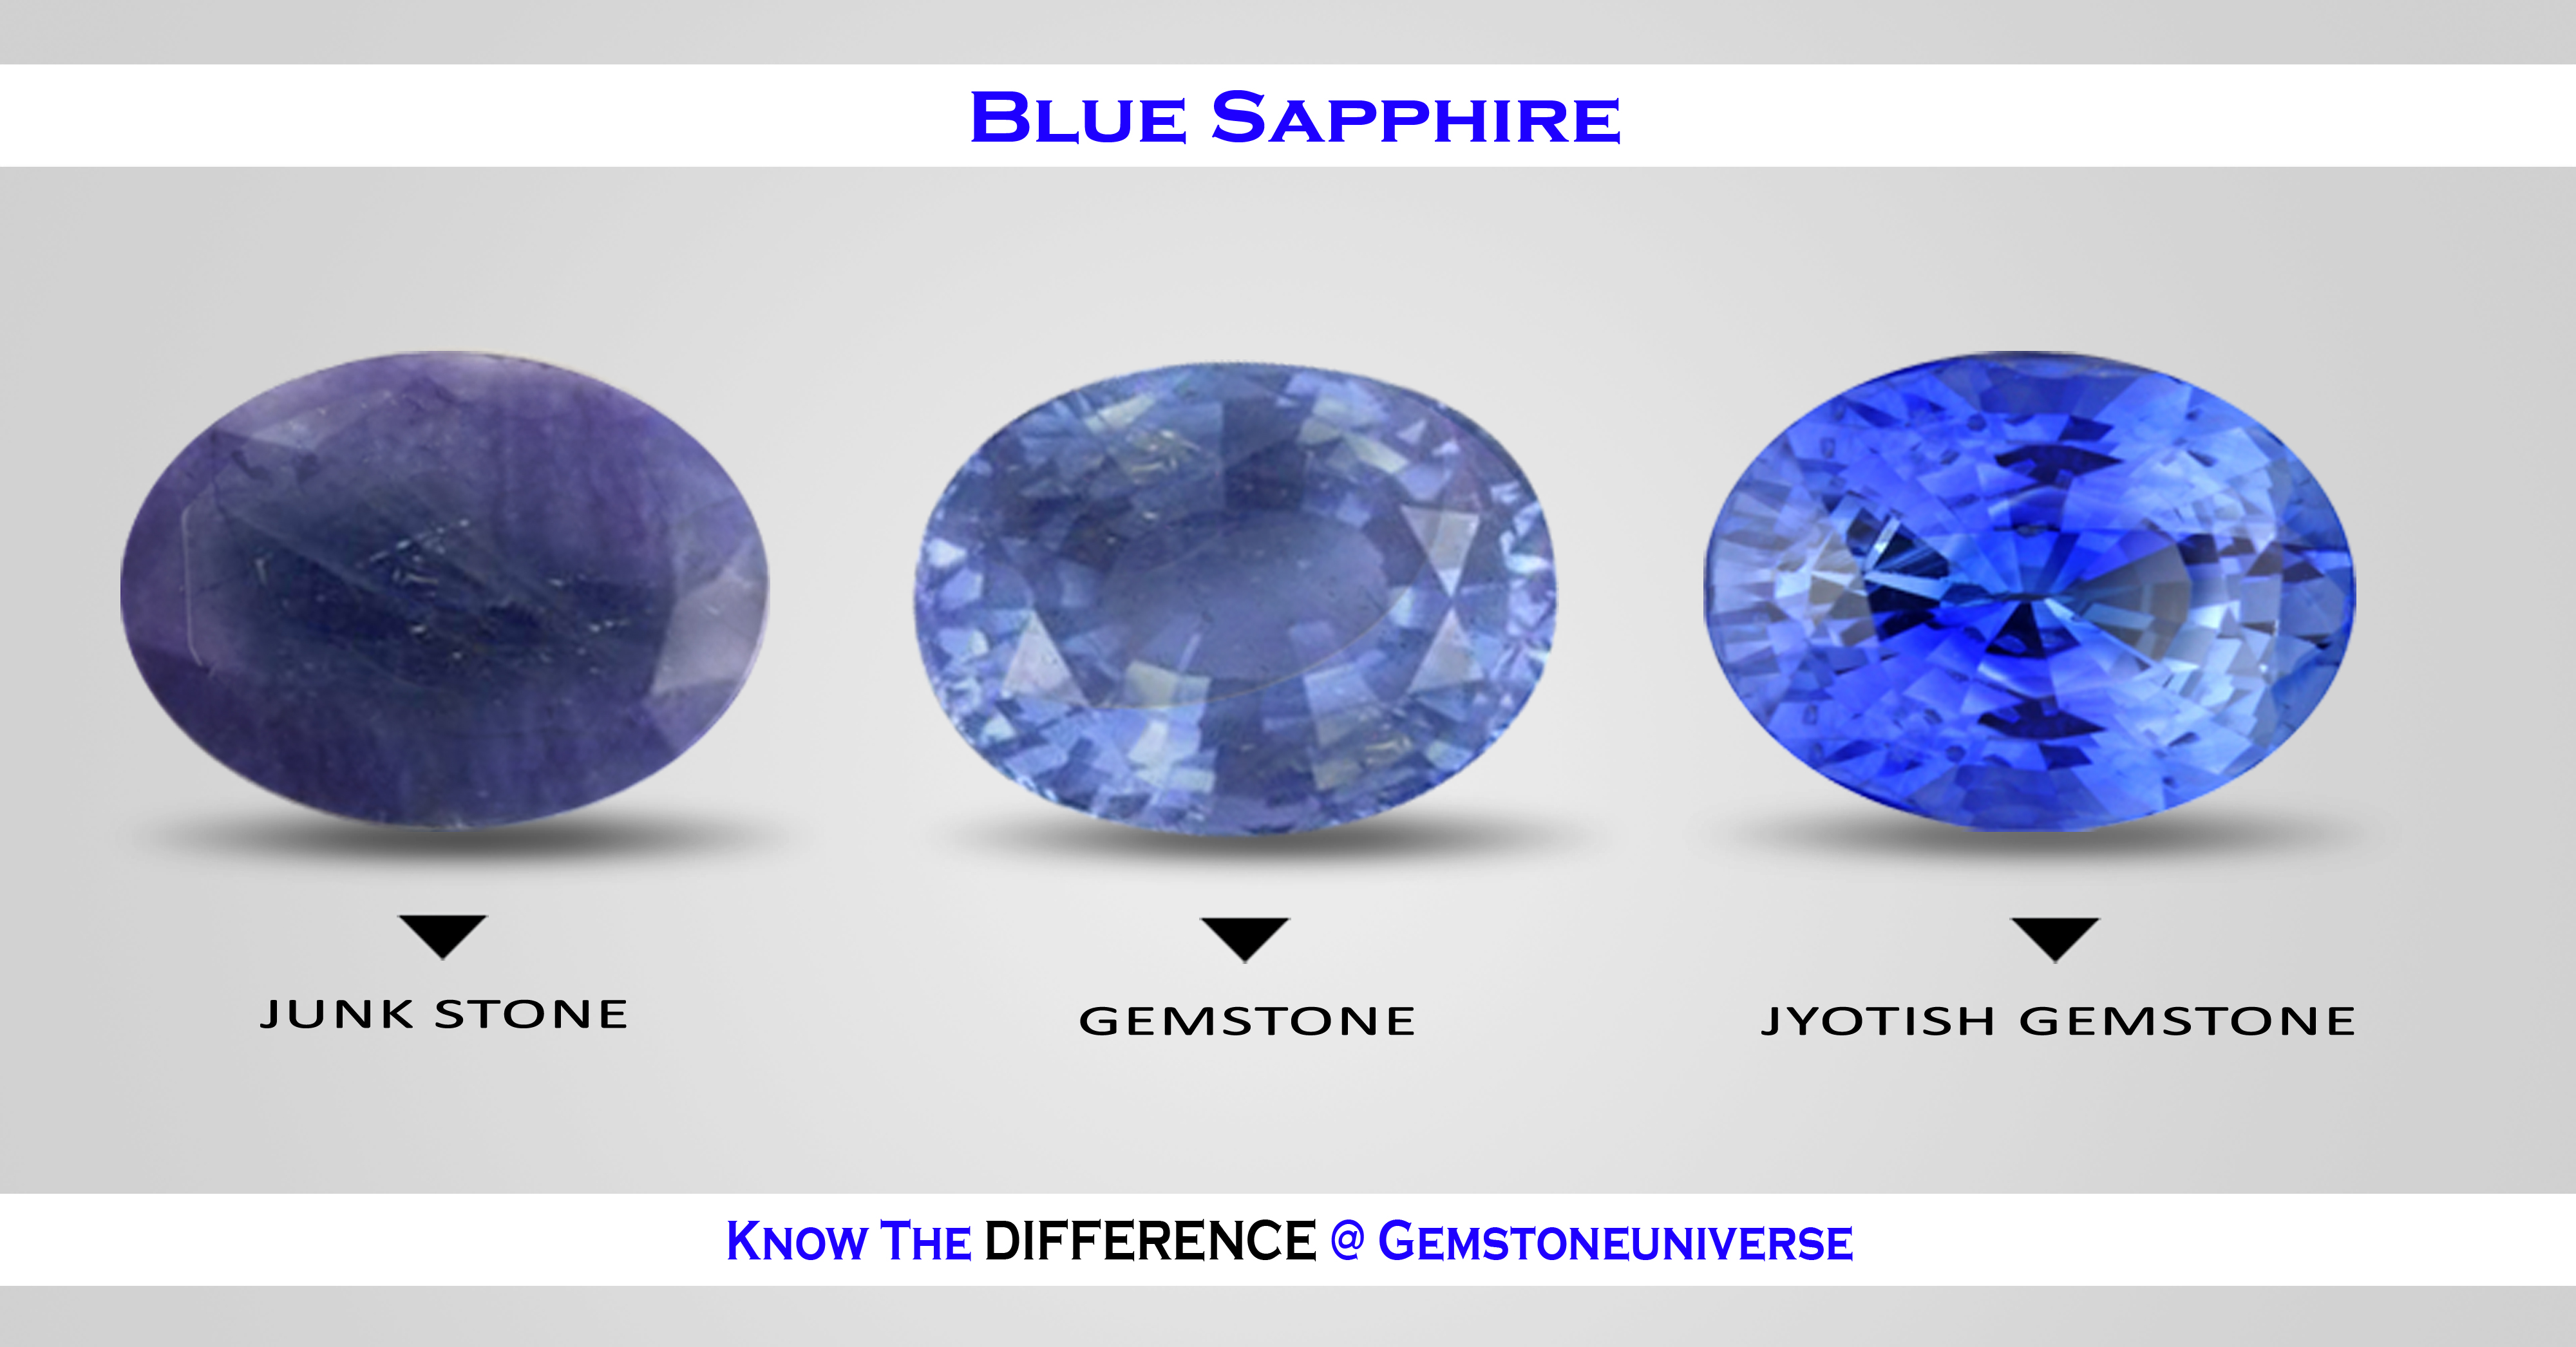 View the Difference between a Stone Junk Stone and a Gemstone